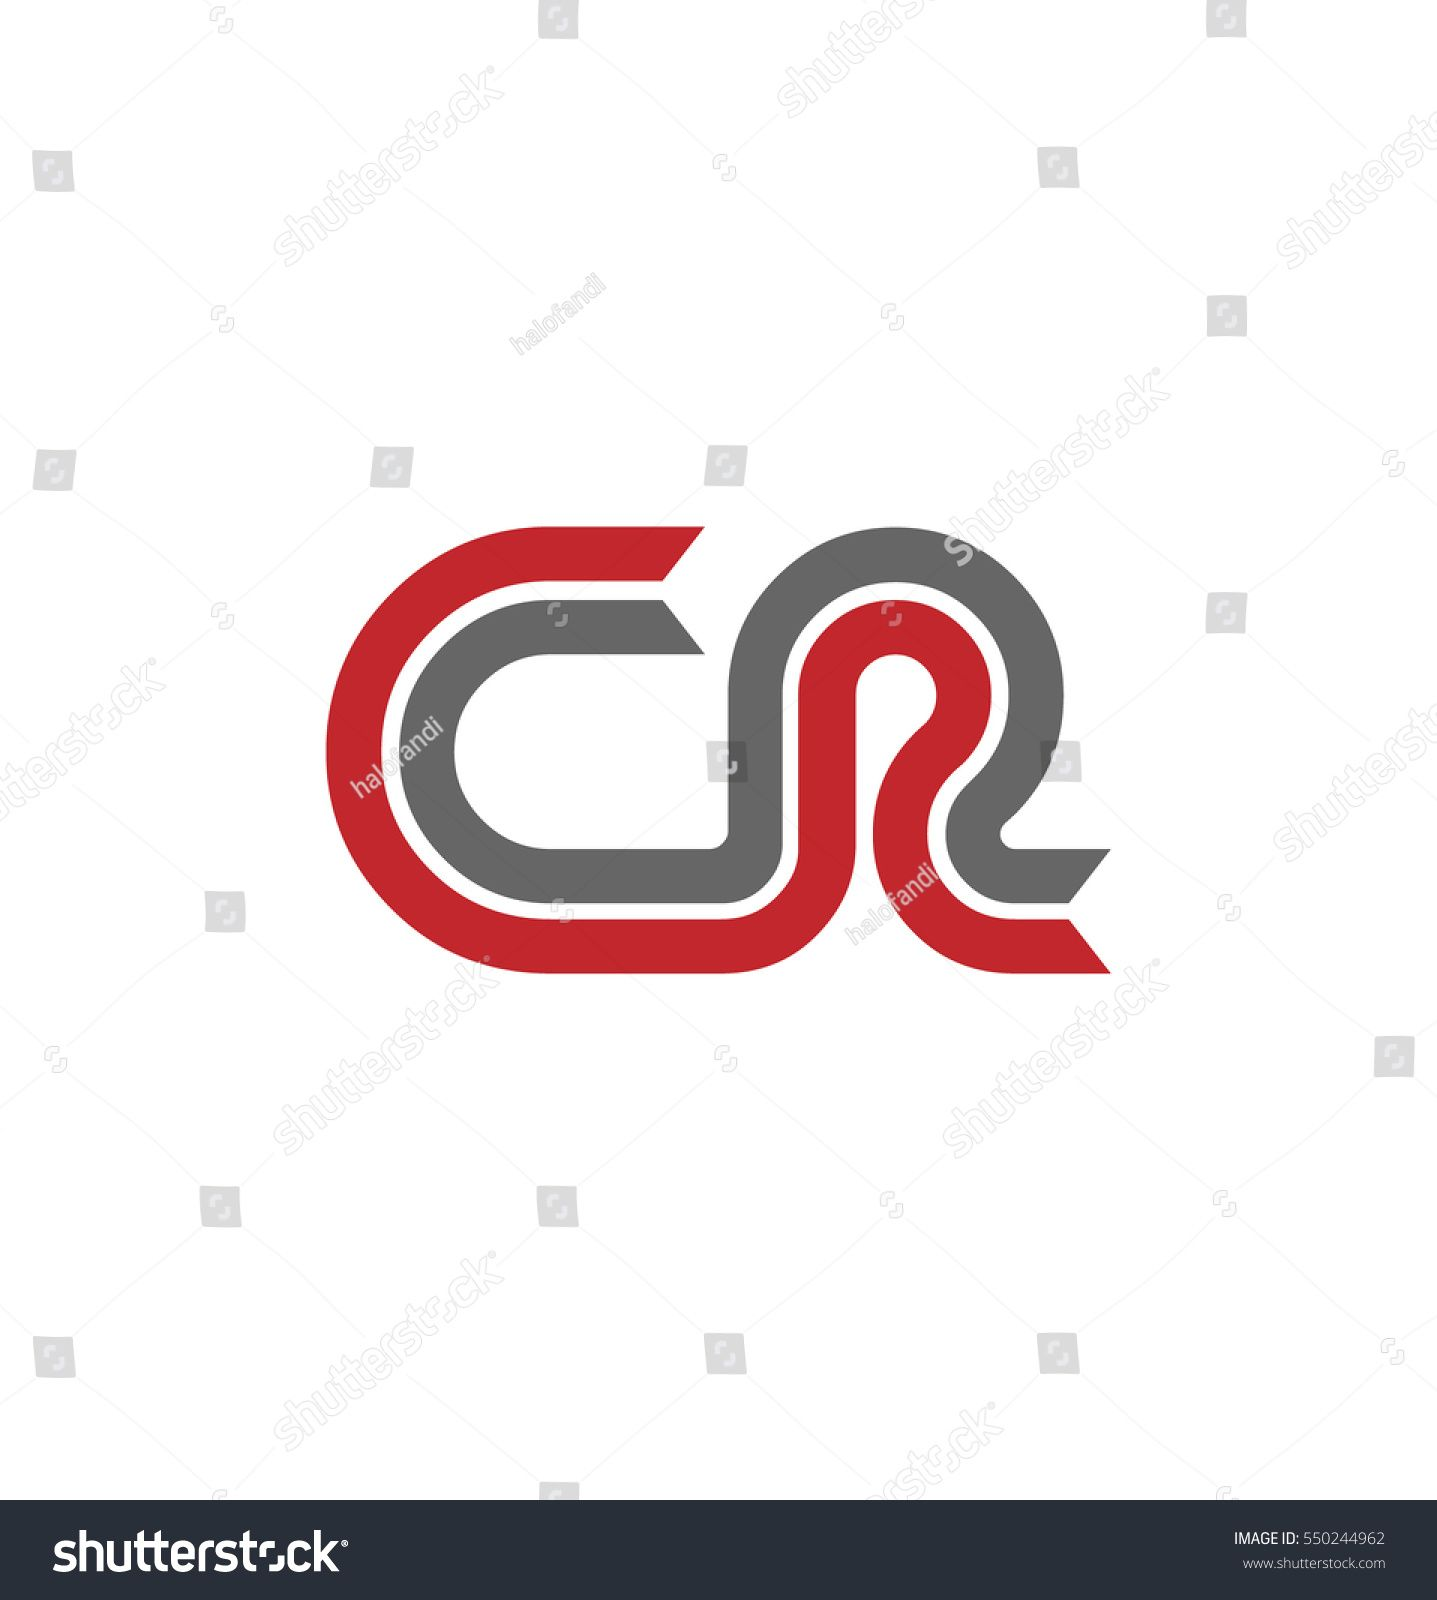 Initial Letter CR Logo with Linked Linear Design Template Red